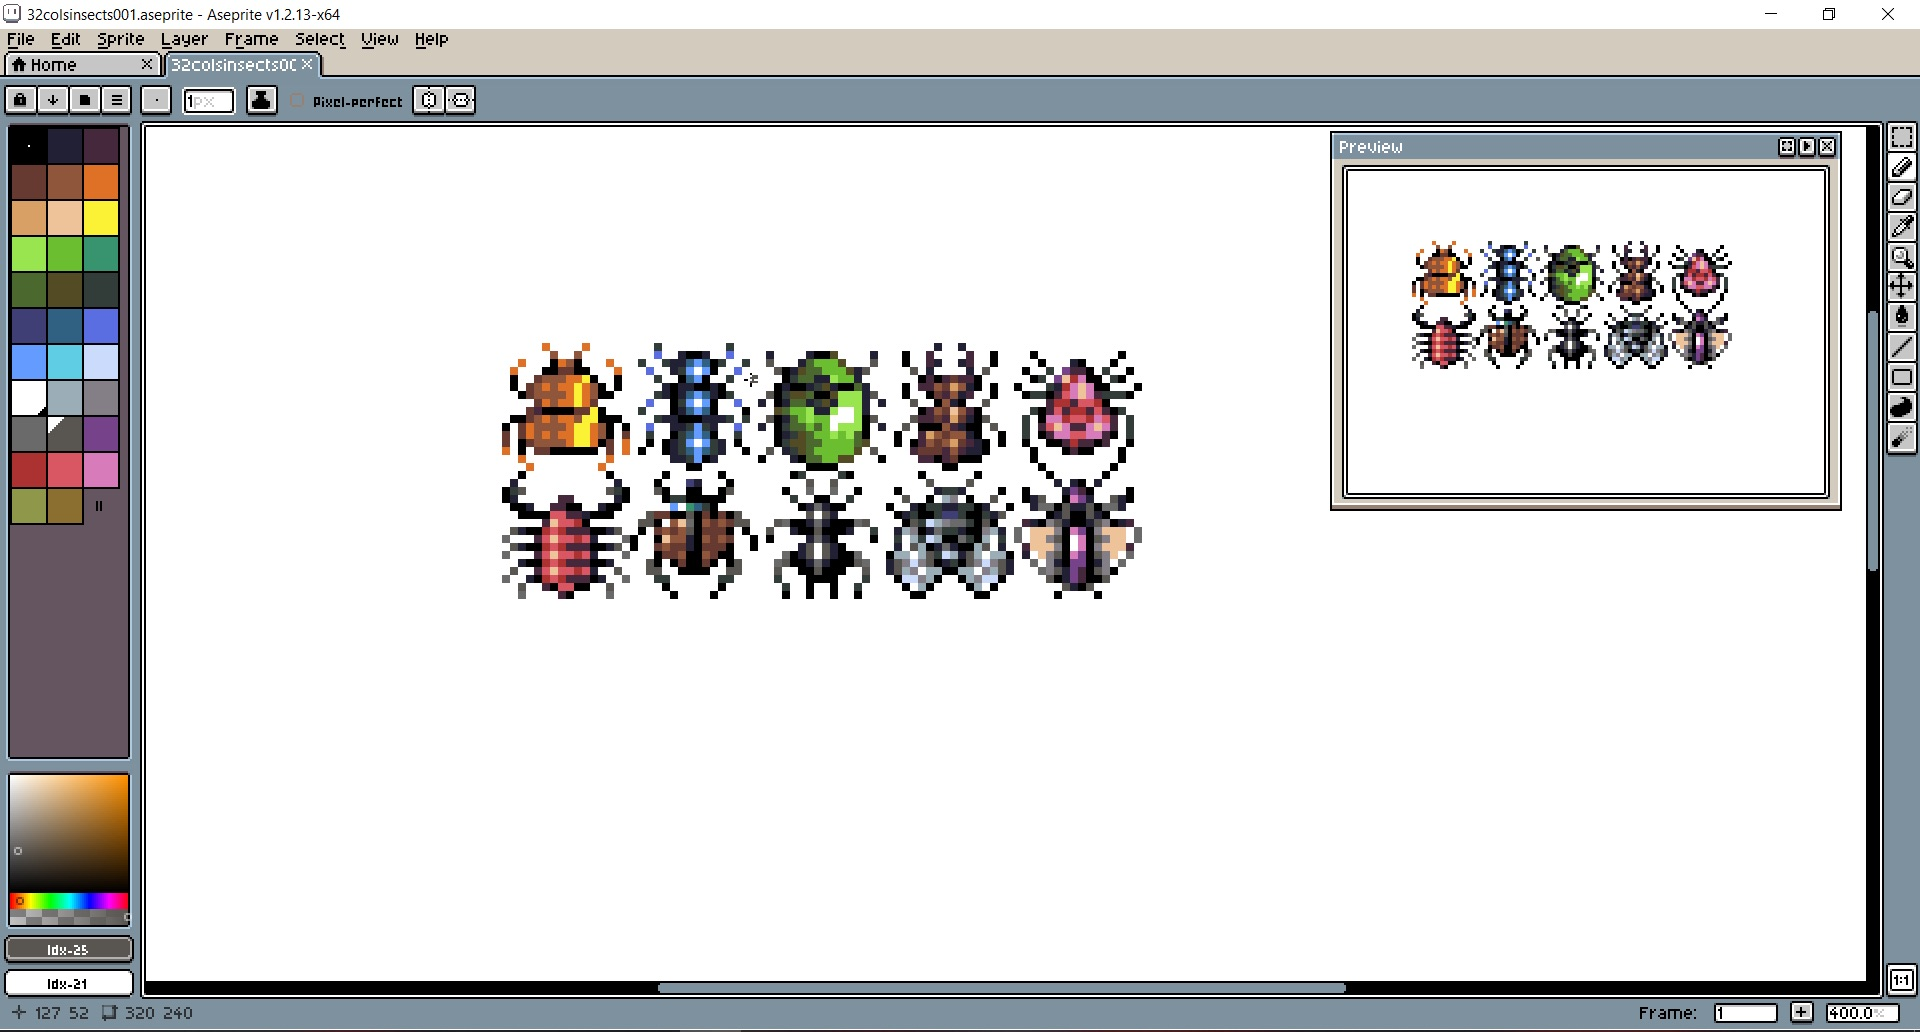 Insects spritesheet in aseprite